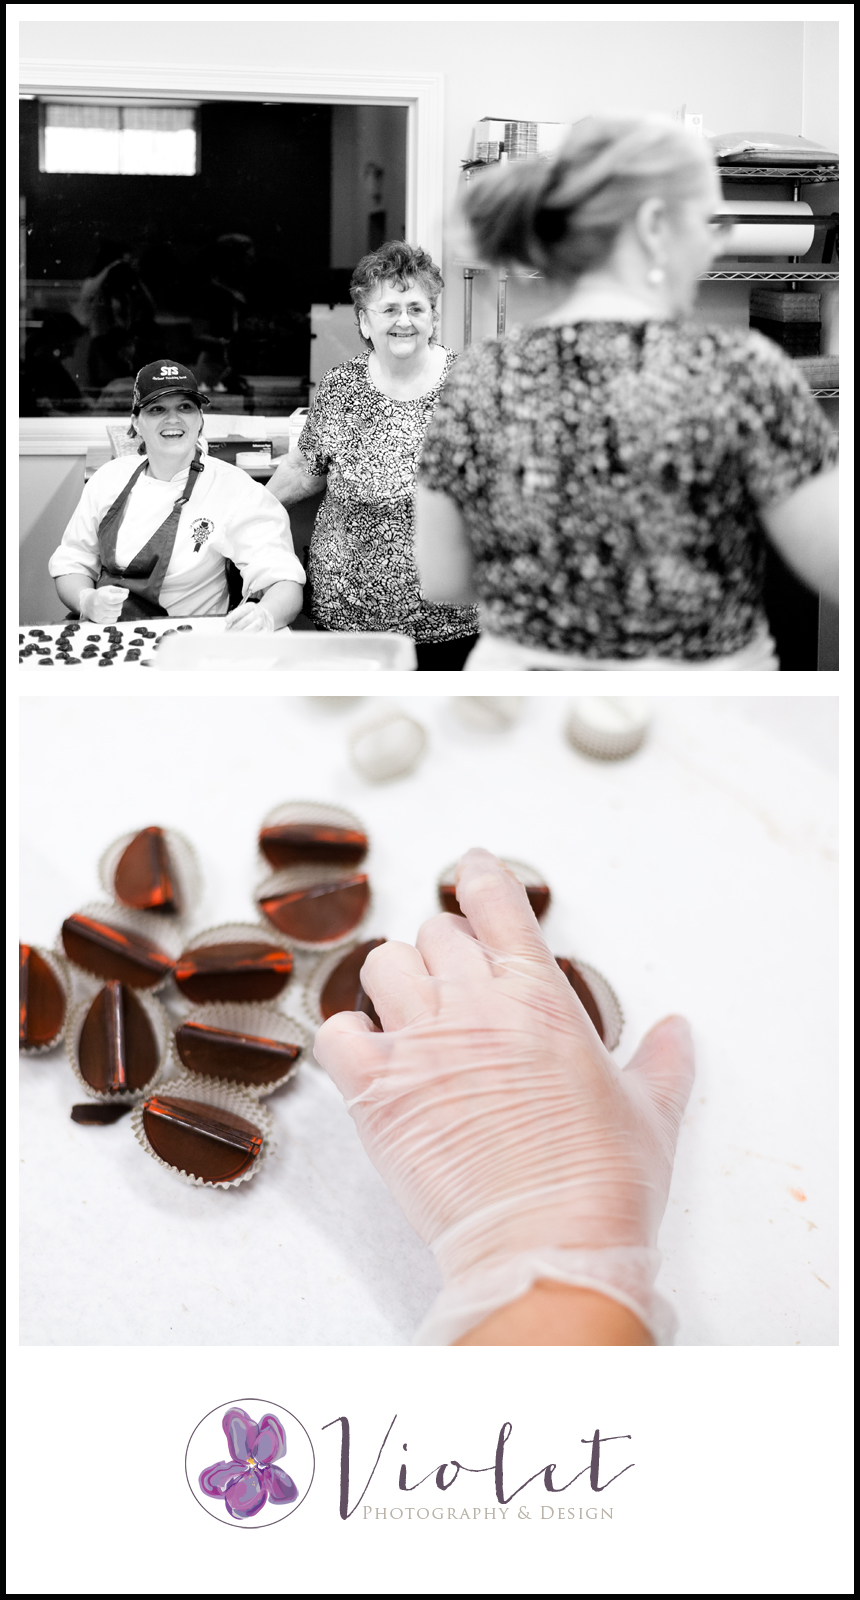 Chocolates Made by Hand